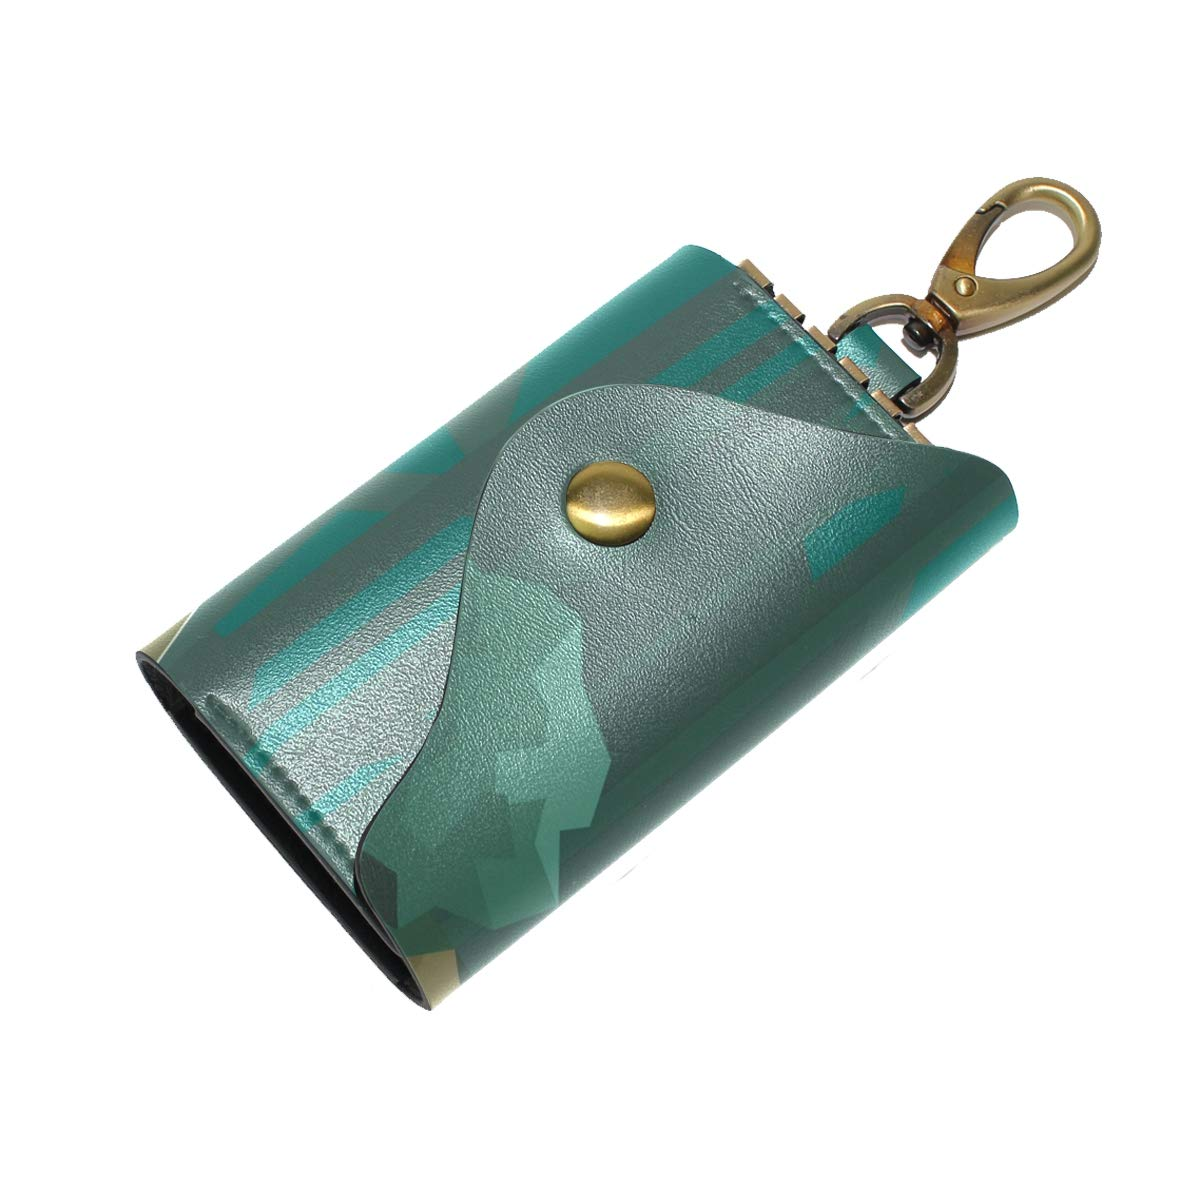 KEAKIA Low Poly Forest Leather Key Case Wallets Tri-fold Key Holder Keychains with 6 Hooks 2 Slot Snap Closure for Men Women